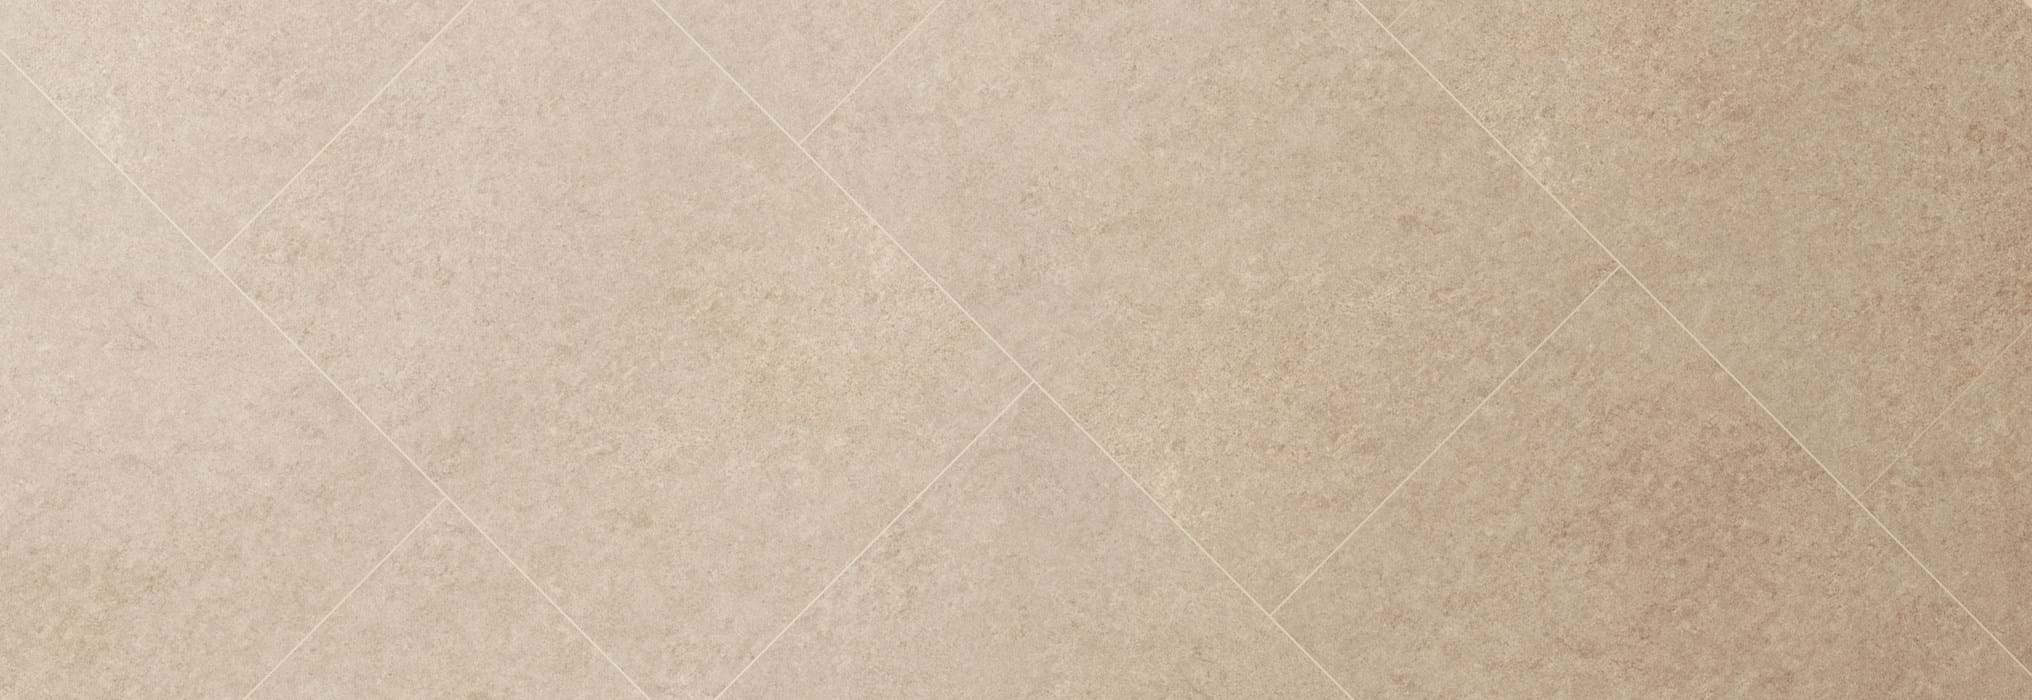 Amtico International: Dry Stone Alba - AM5S4401